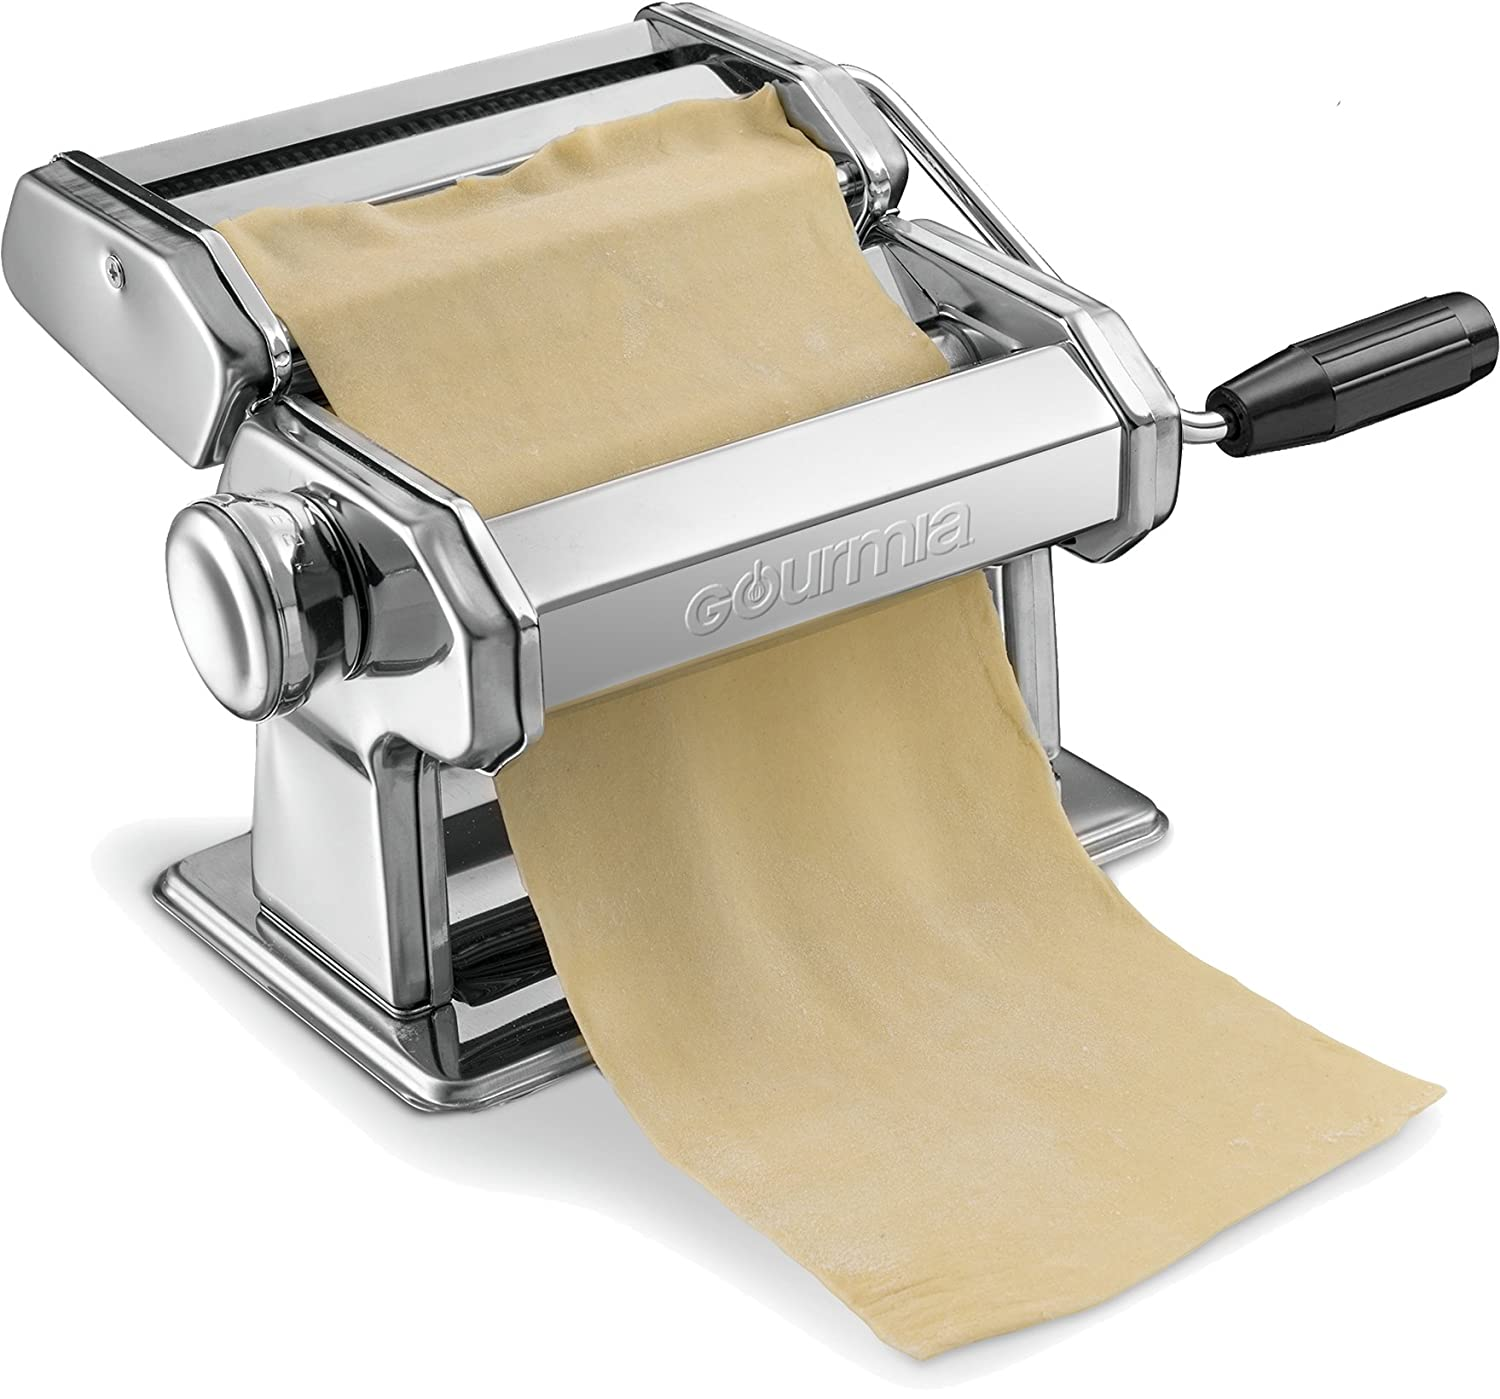 Gourmia GPM9980 – Pasta Maker, Roller and Cutter - Manual Hand Crank – Slices Dough into Spaghetti and Fettuccine – Stainless Steel Surface and Chrome Plated Parts - 150mm